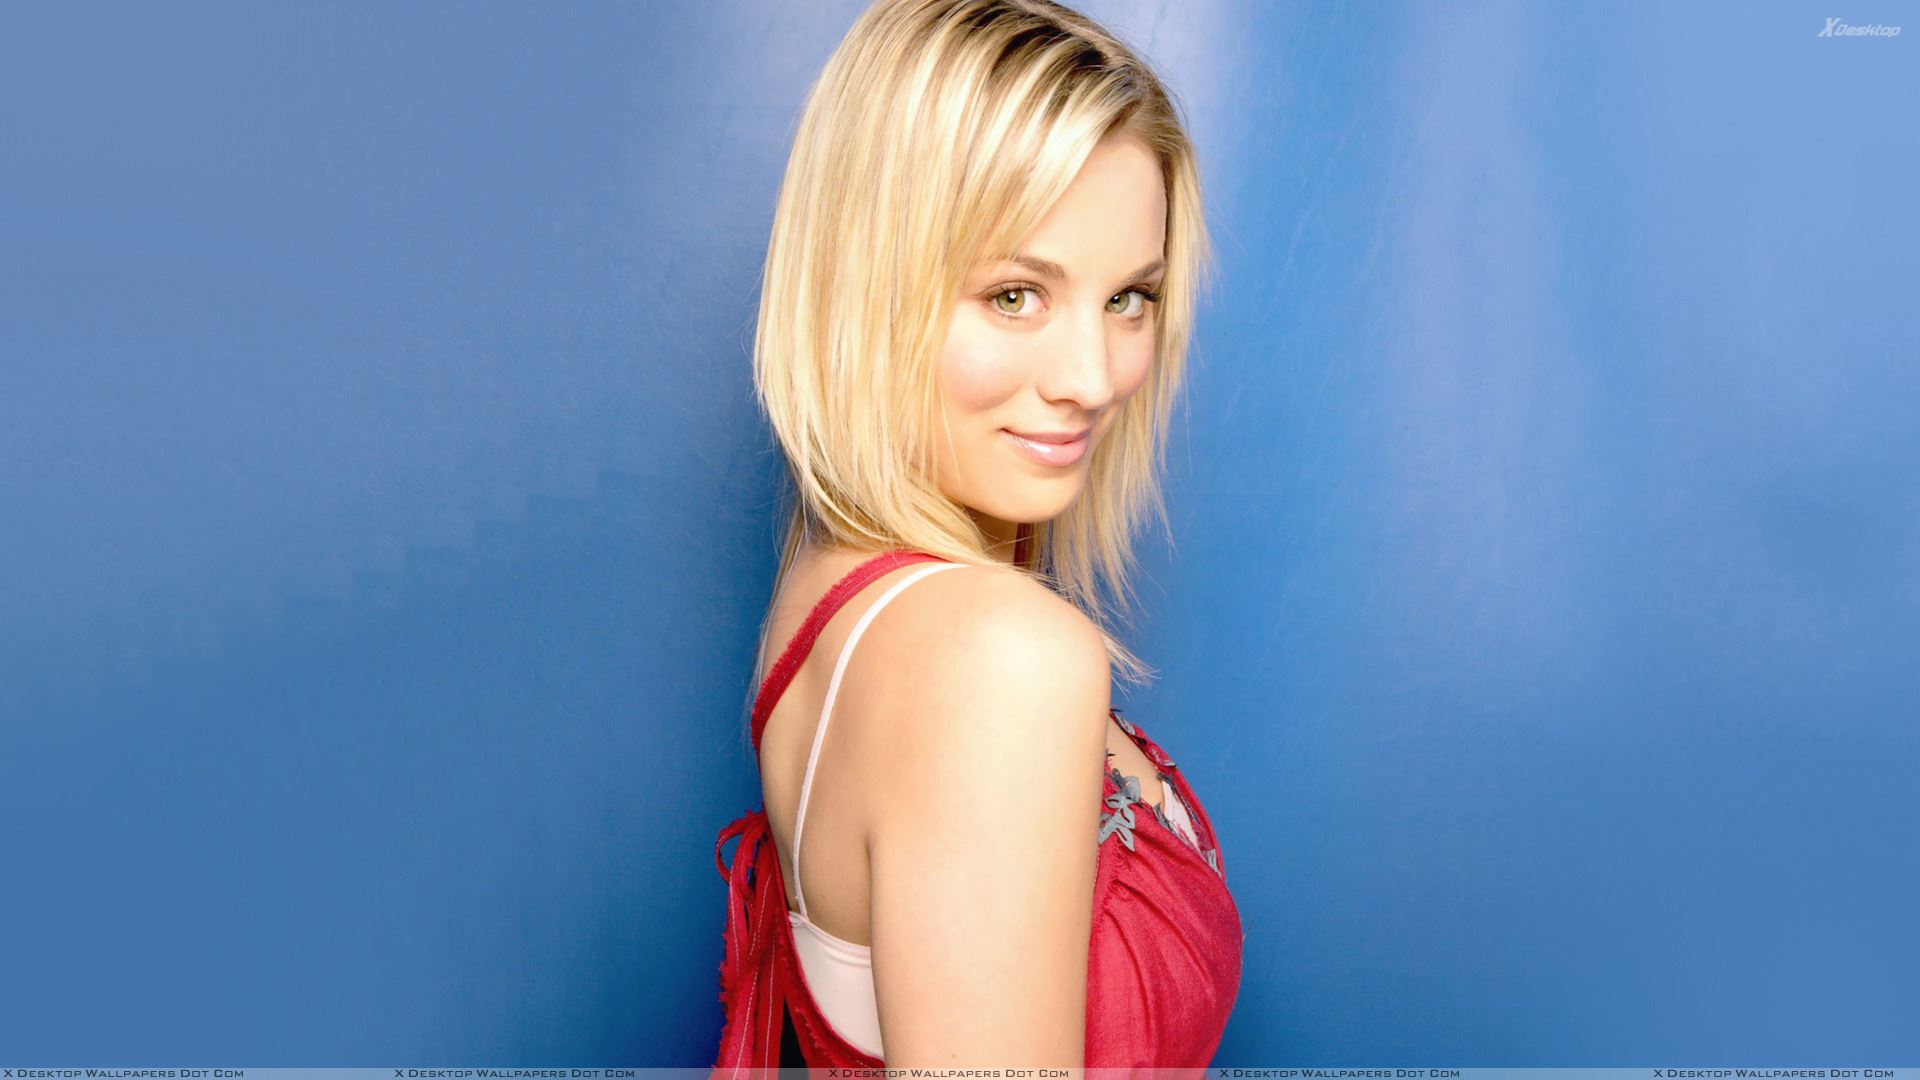 kaley cuoco wallpapers, photos & images in hd